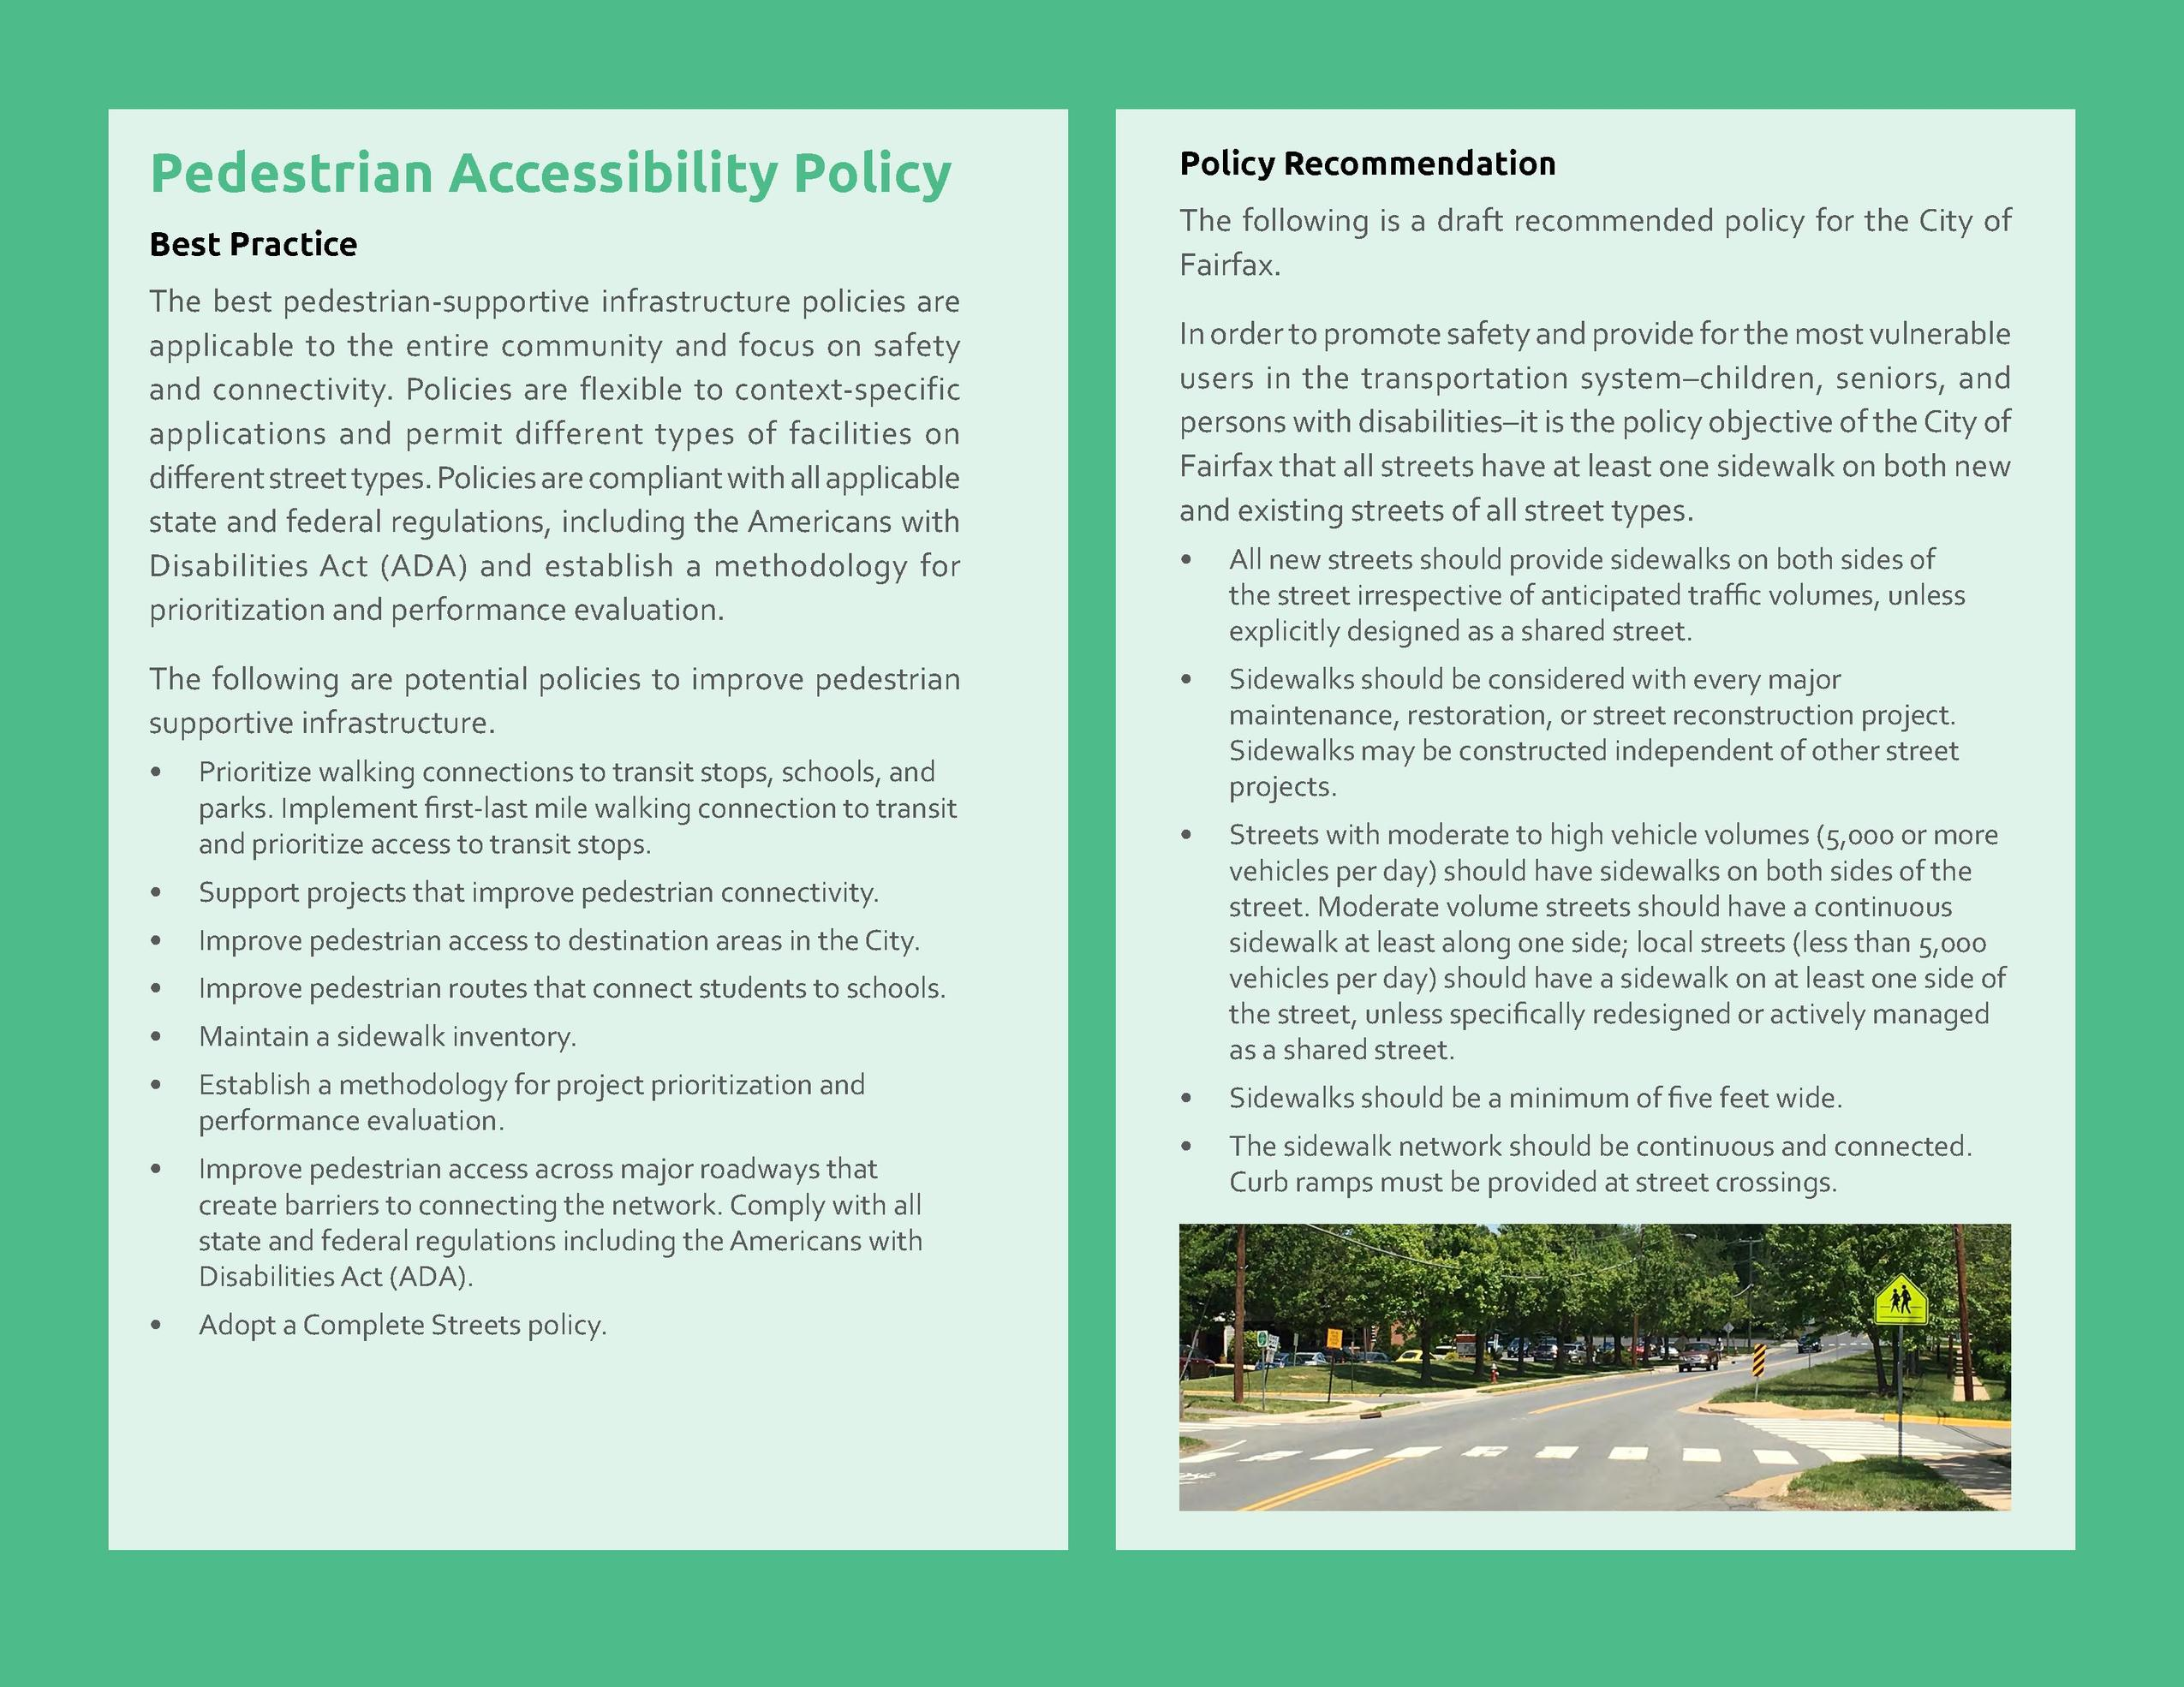 Pedestrian Accessibility Policy Best Practice The best pedestrian-supportive infrastructure policies are applicable to the...